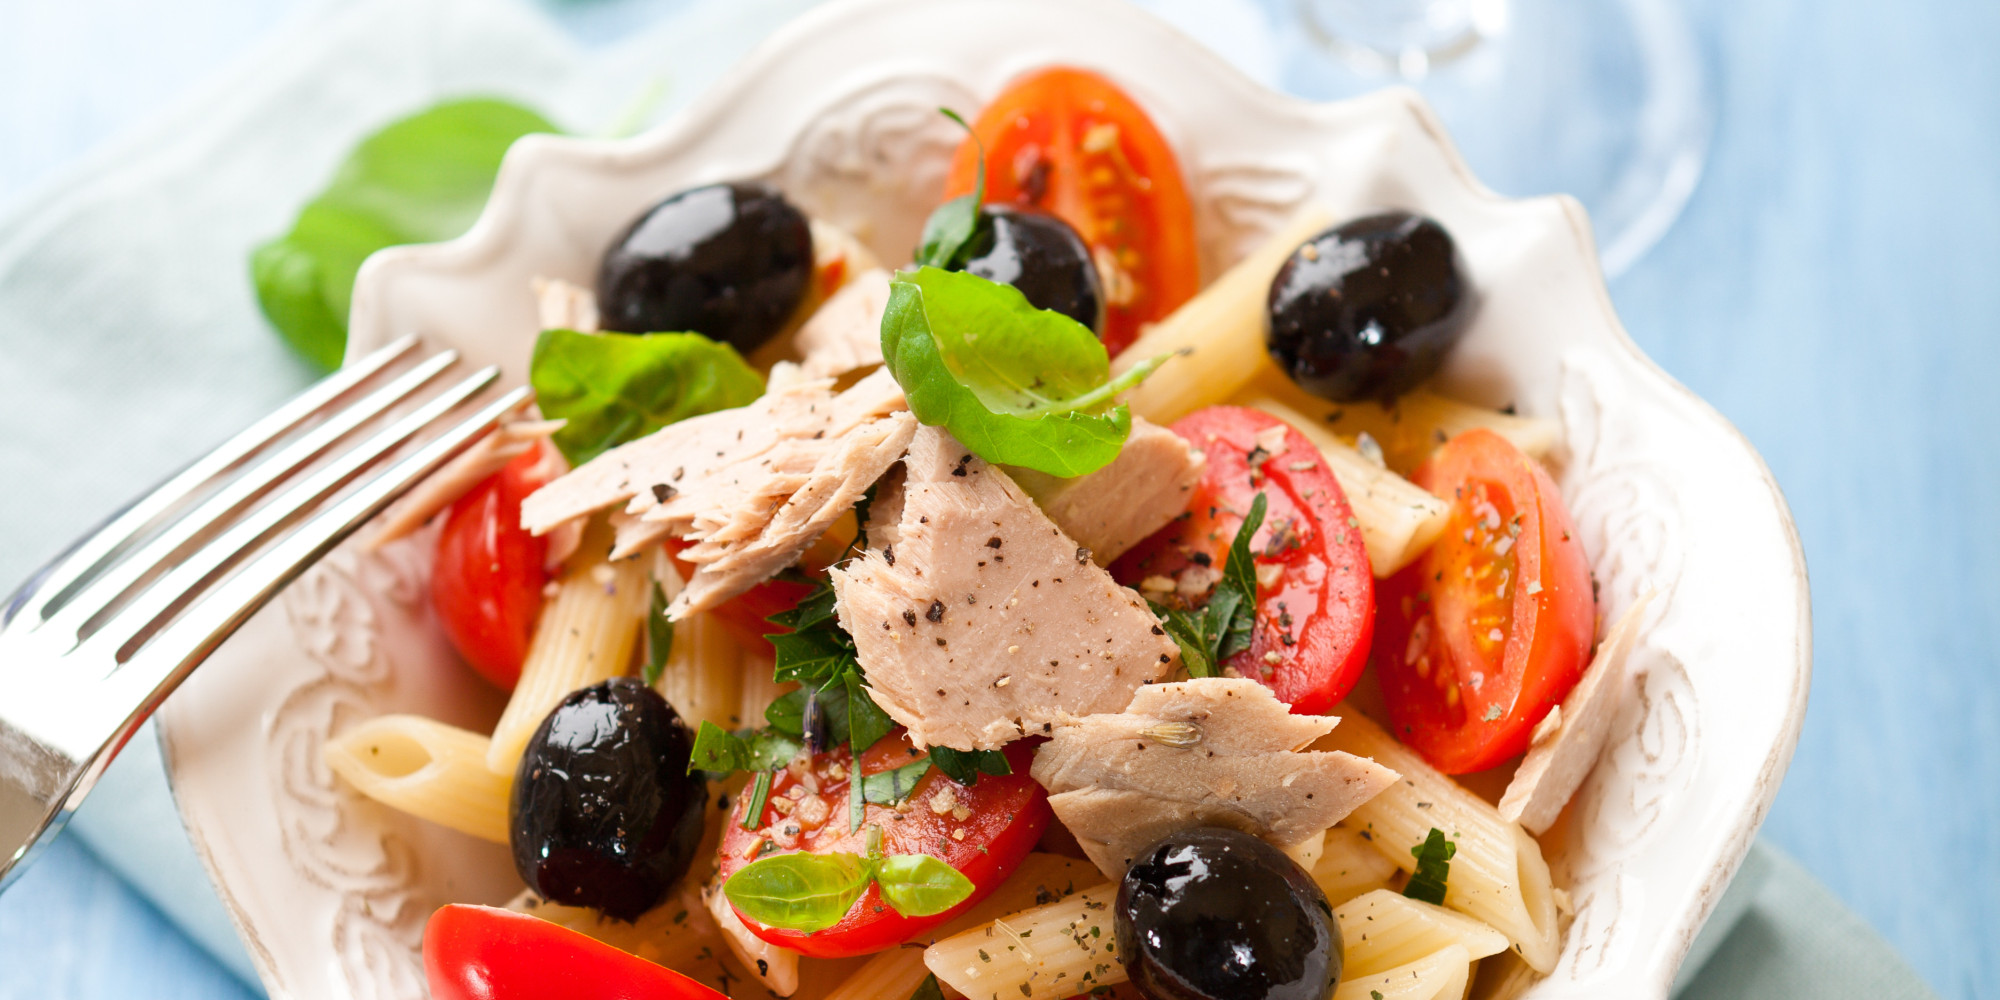 Pescetarian diet may lower your risk of bowel cancer new for Fish and veggie diet